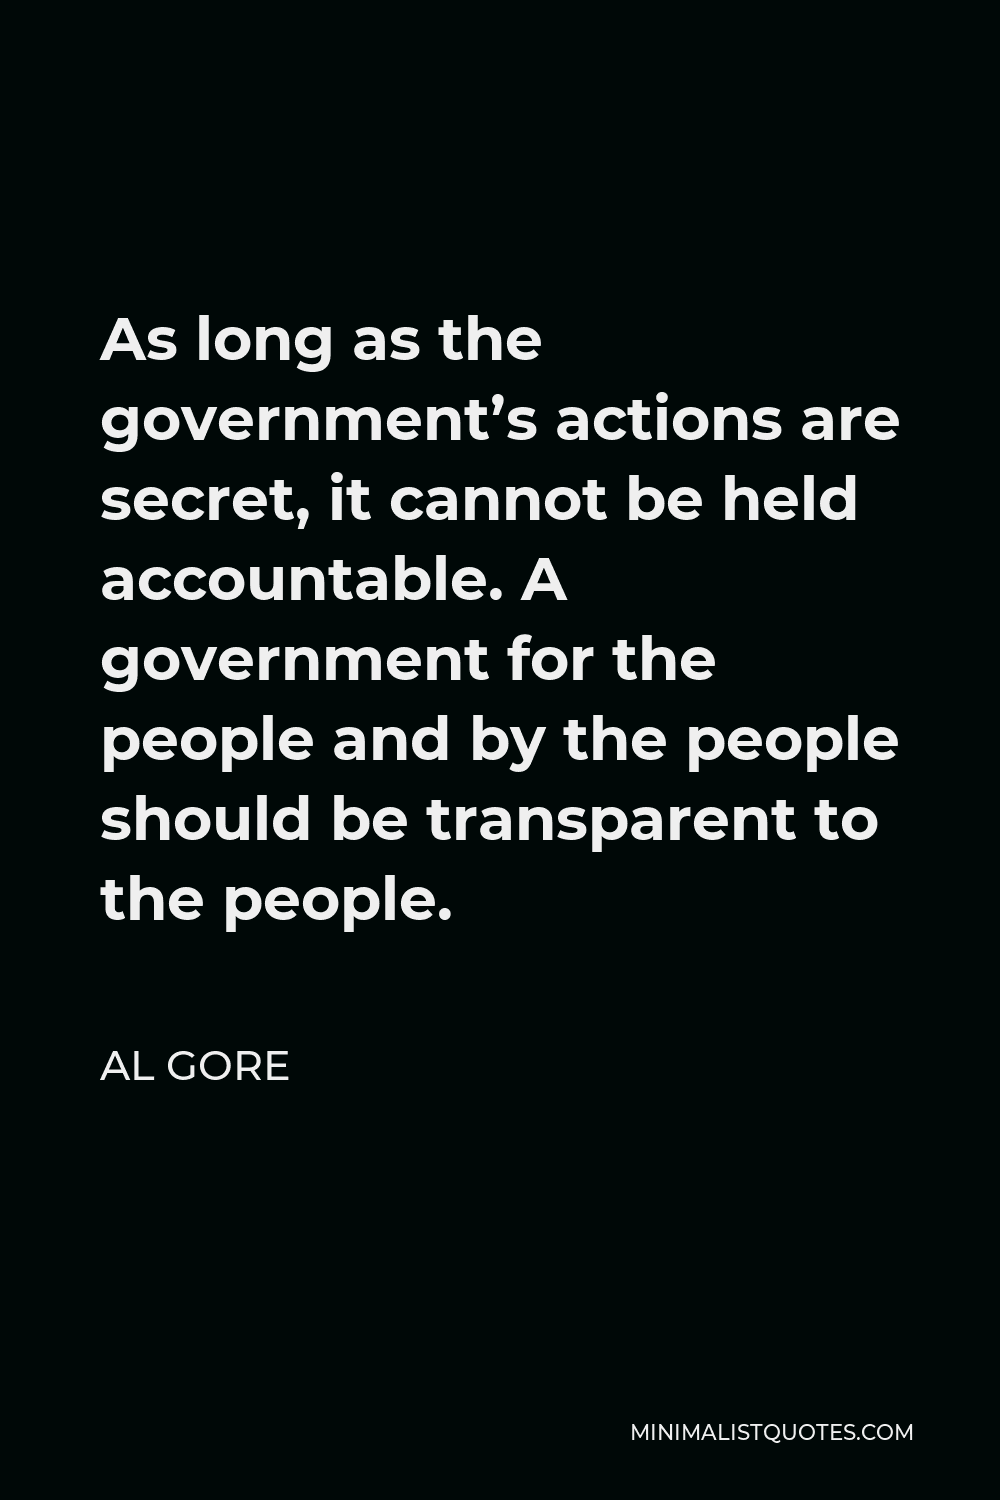 Al Gore Quote - As long as the government's actions are secret, it cannot be held accountable. A government for the people and by the people should be transparent to the people.